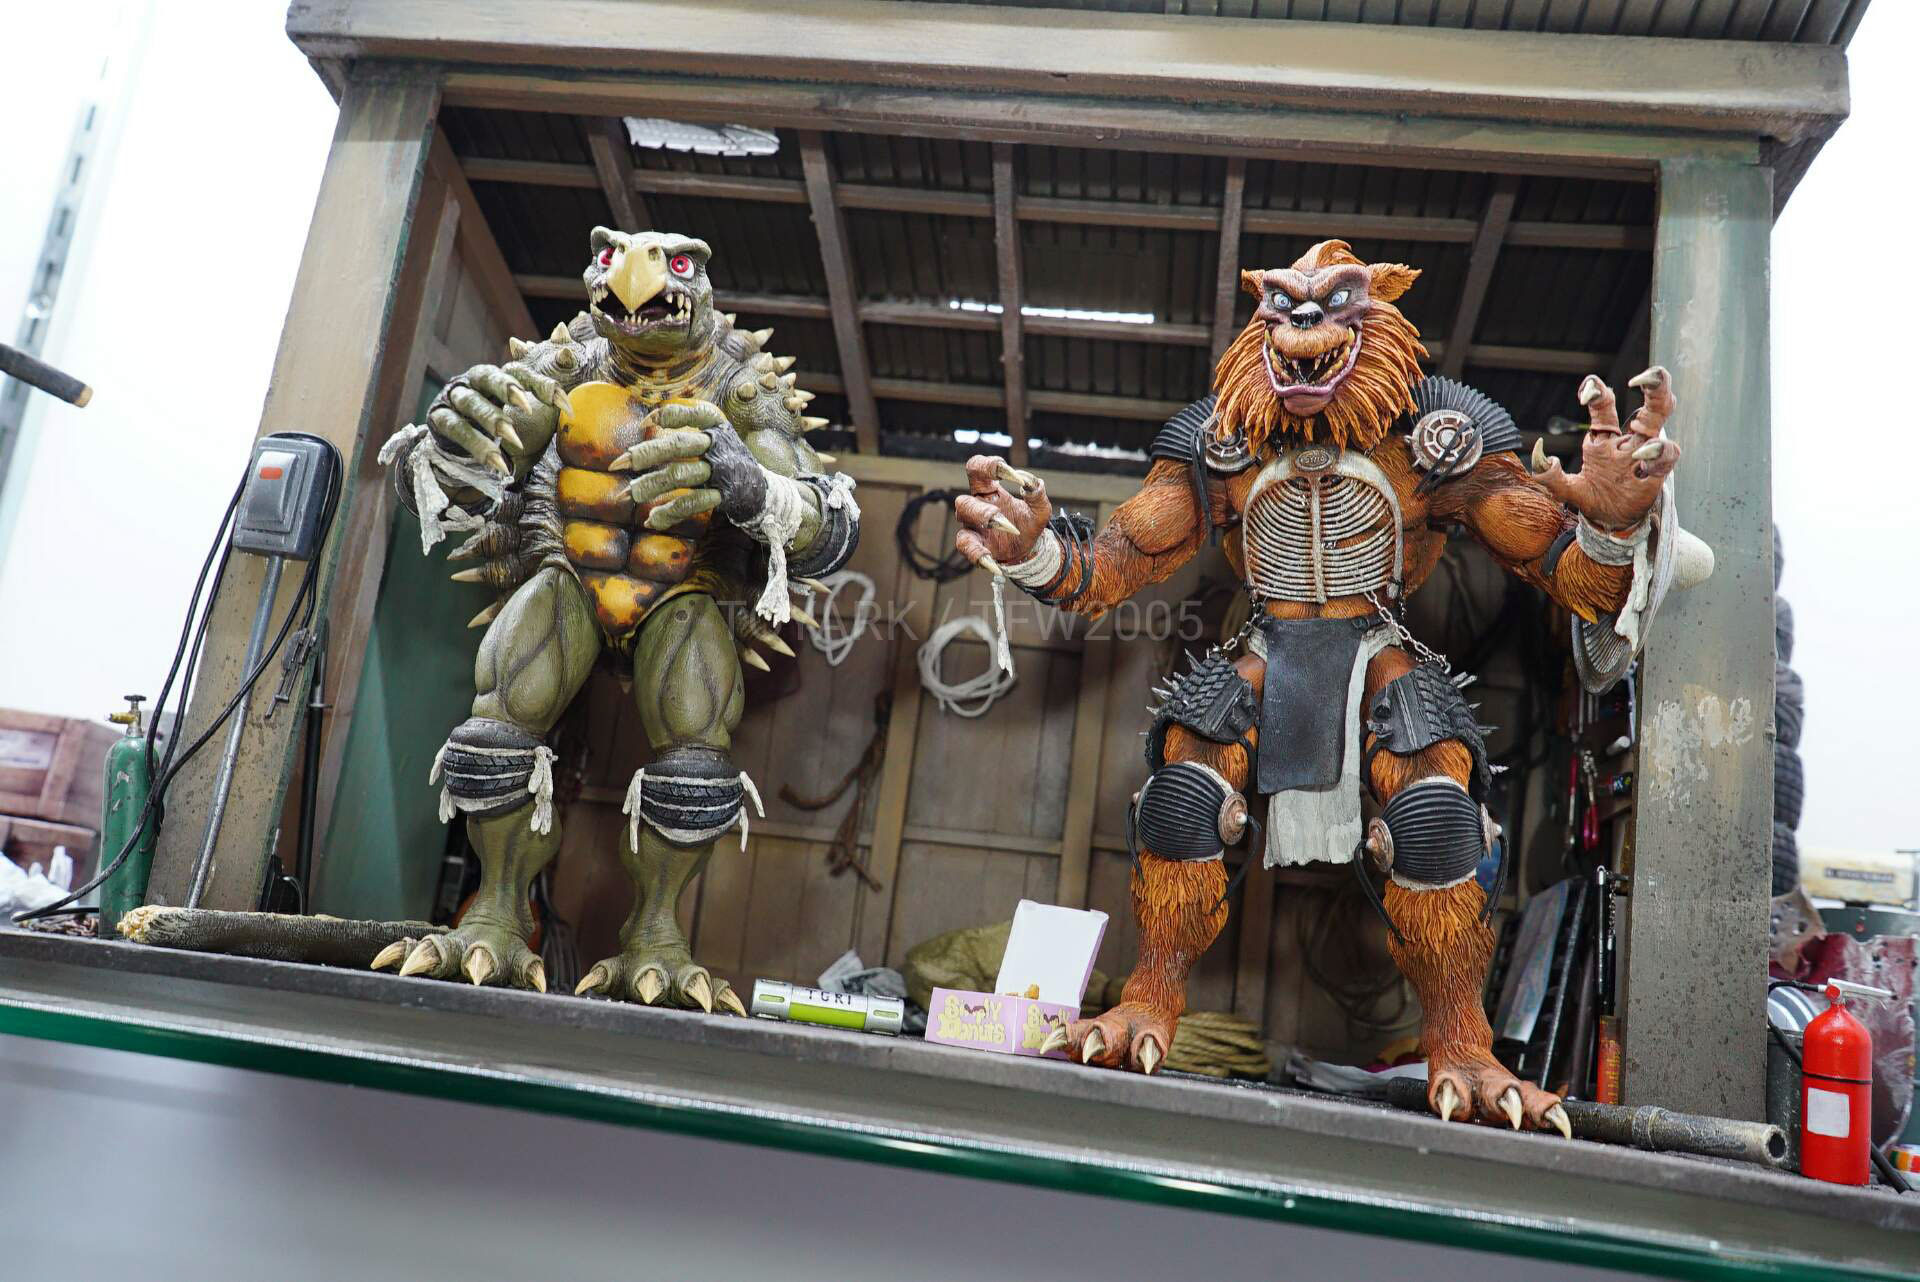 Toy Fair 2020 Neca Teenage Mutant Ninja Turtles Secret Of The Ooze Cartoon And Gam Actionfigurenews Ca Canadian Action Figure News And Discussion